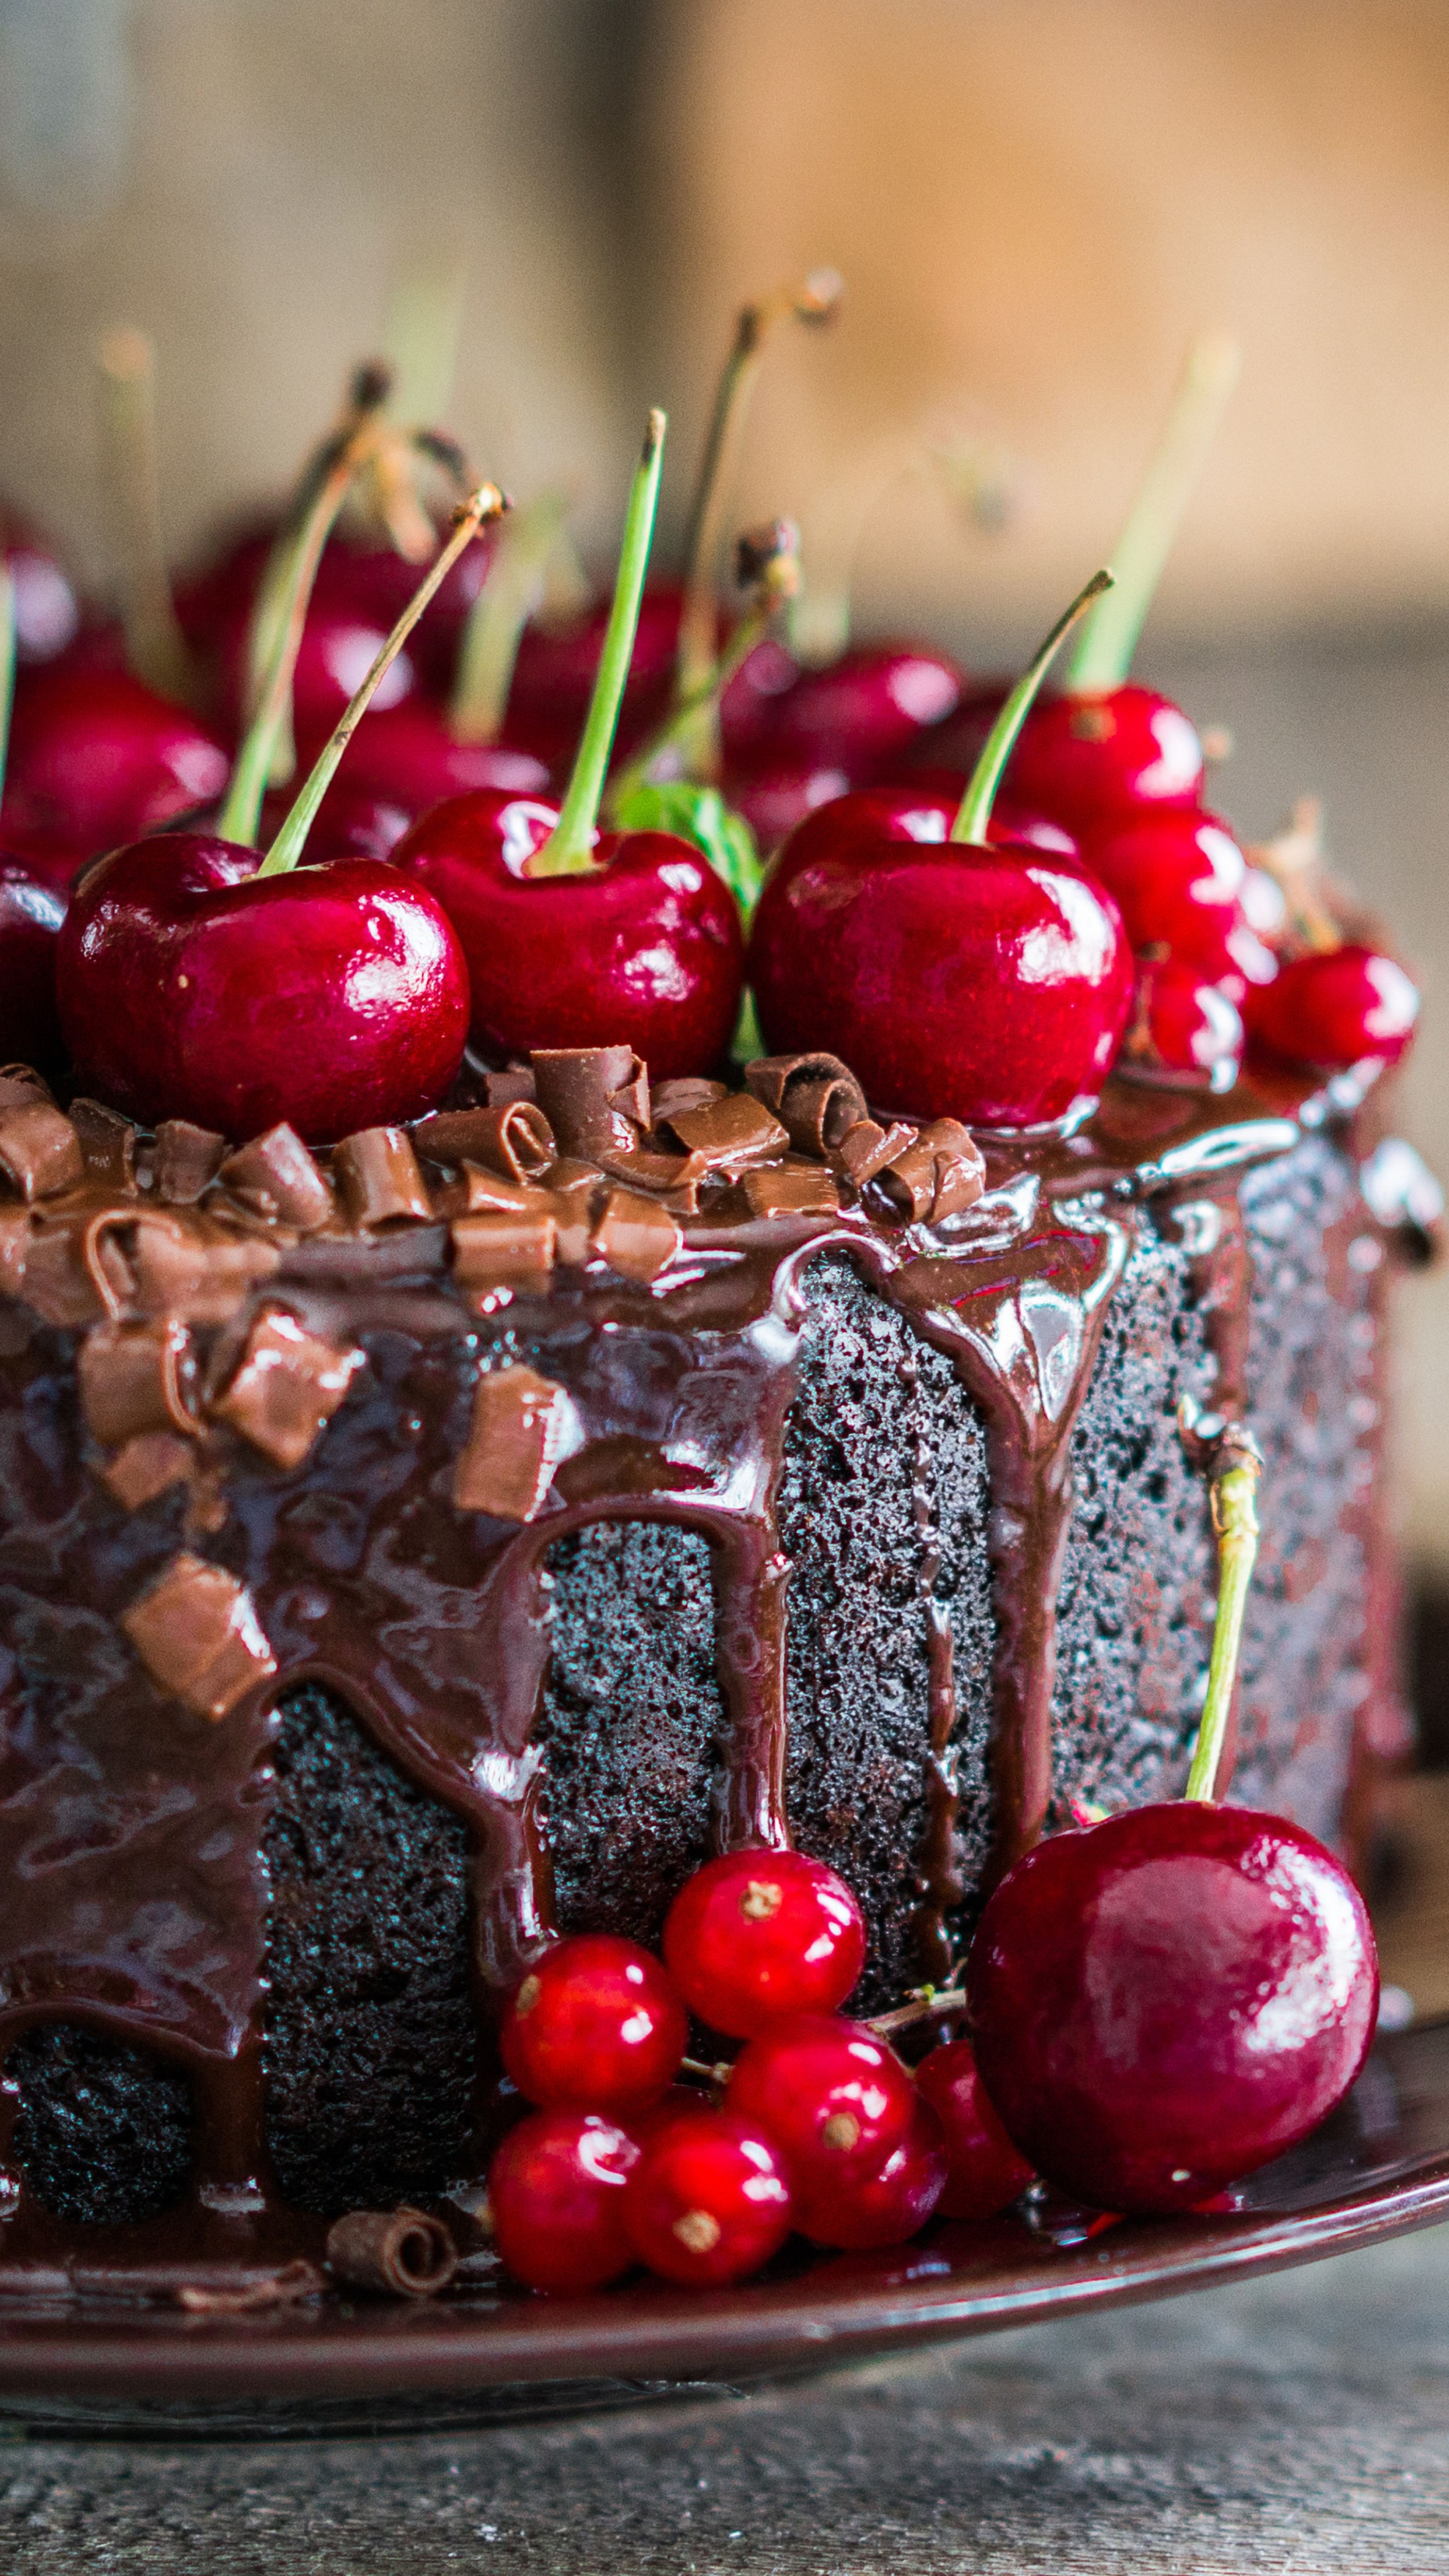 Wallpaper Love Quotes Hd Wallpaper Cake Receipt Chocolate Cherry 5k Food 17068